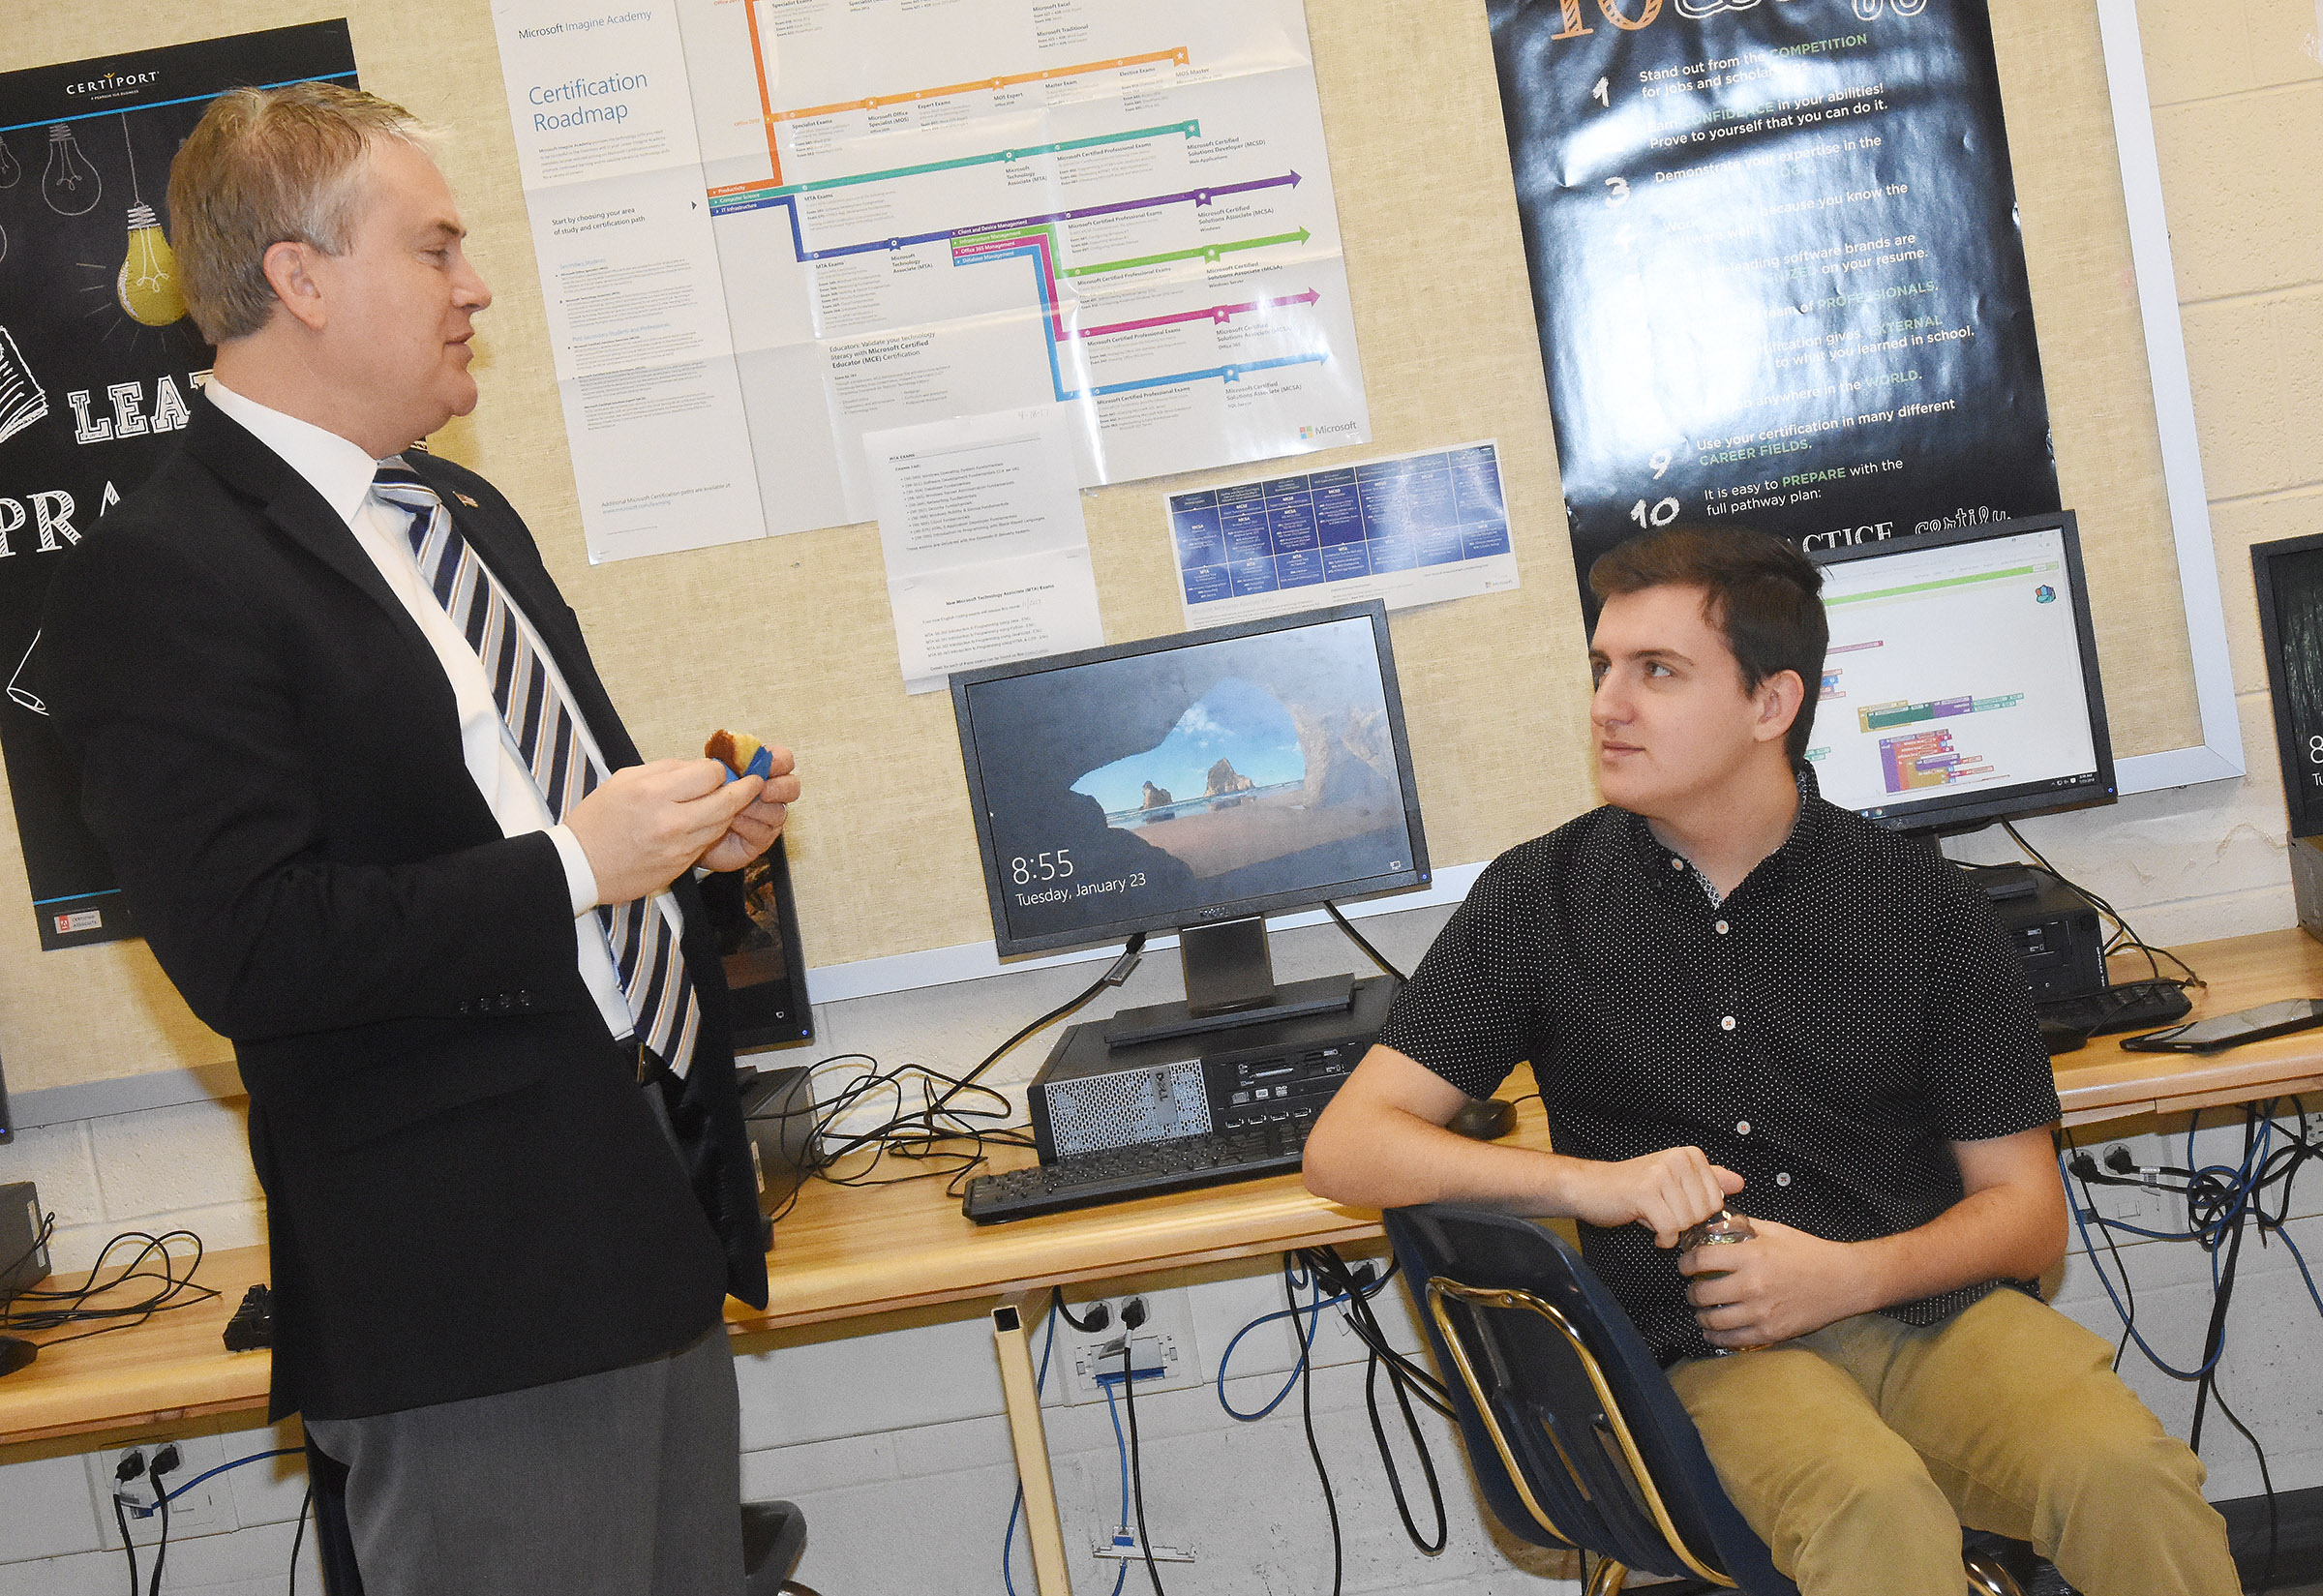 U.S. Rep. James Comer, R-Ky., visited CHS on Tuesday, Jan. 23, to meet with CHS AP computer science students. Comer, at left, is pictured with senior Austin Fitzgerald. Fitzgerald and fellow CHS senior Christian Berry recently won the First District 2017 Congressional App Challenge.